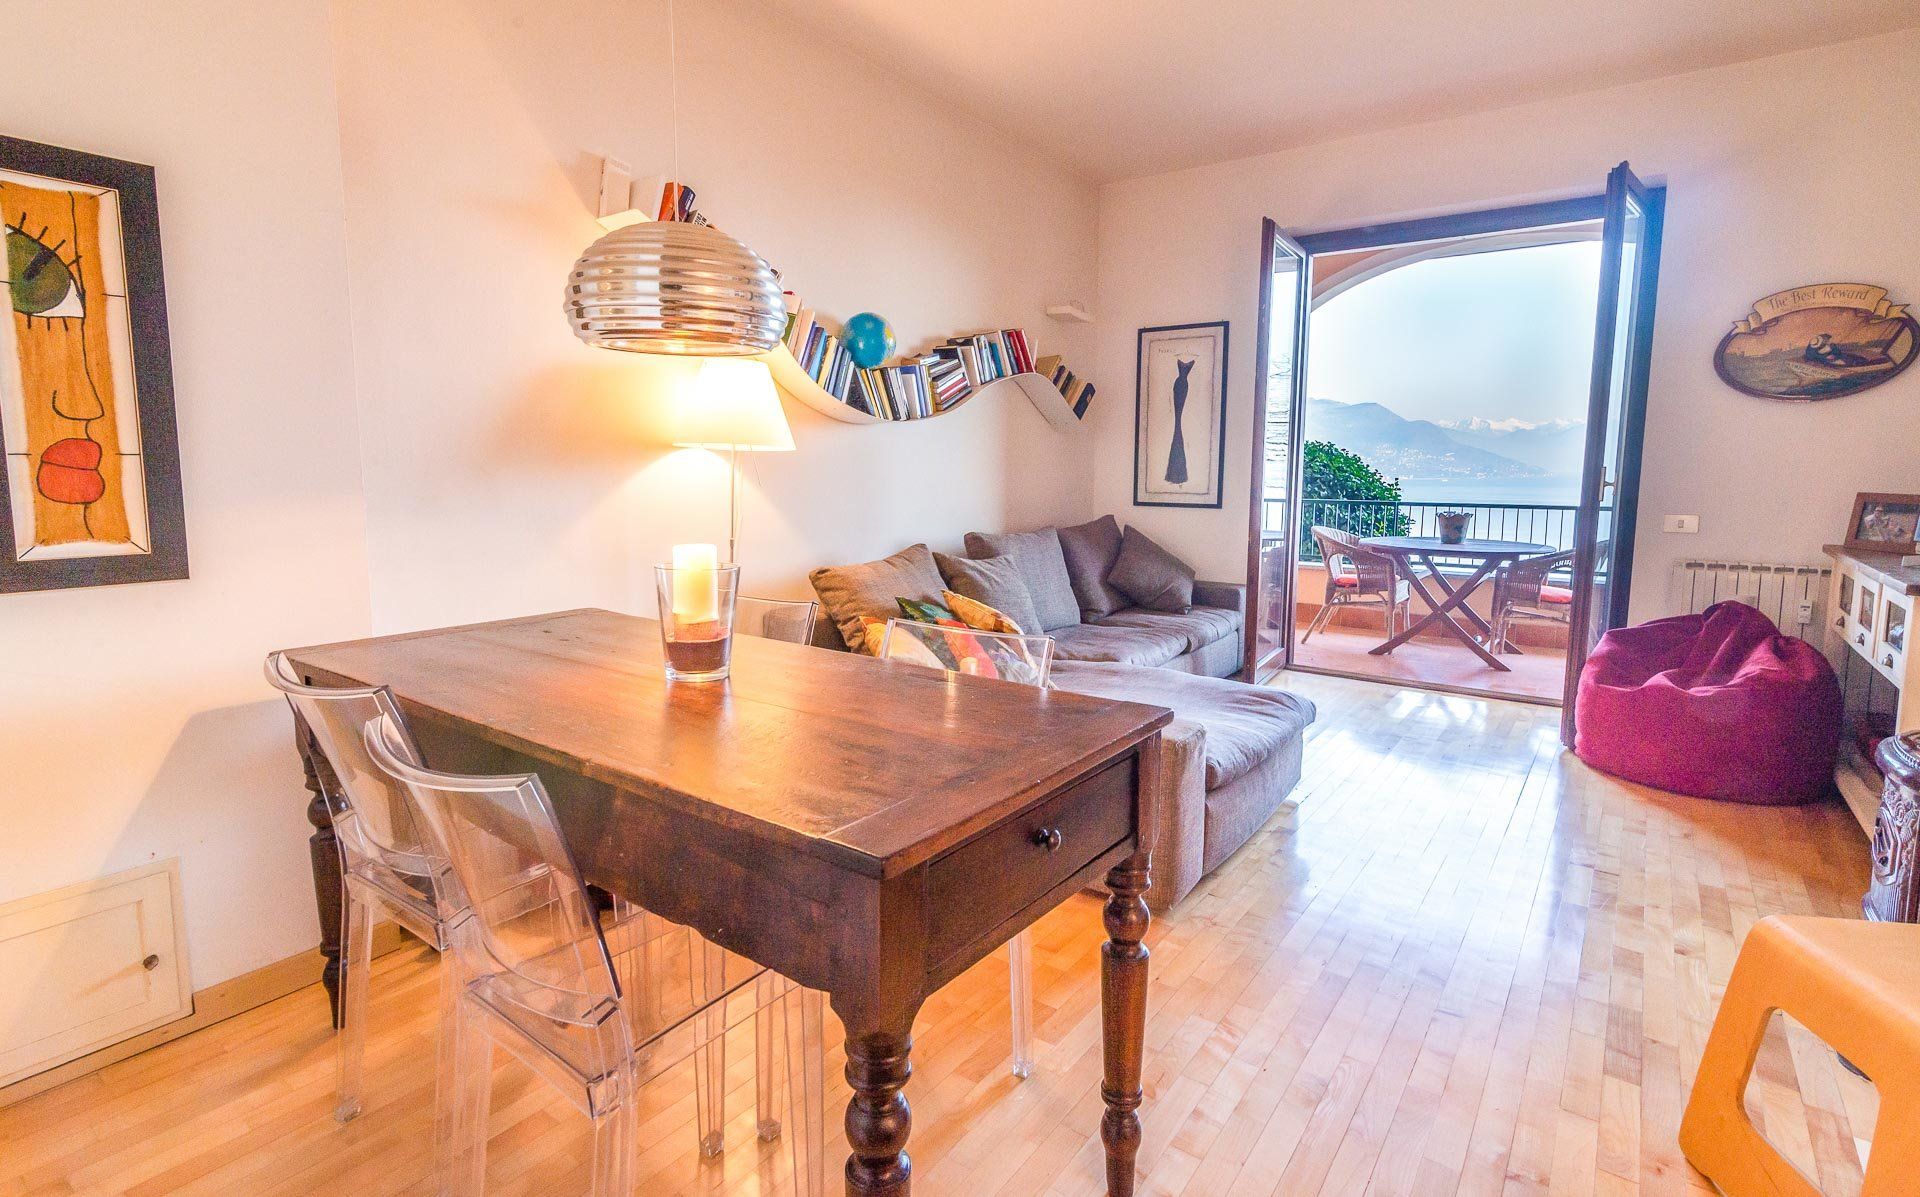 Apartment for sale in Stresa in a residence - living room